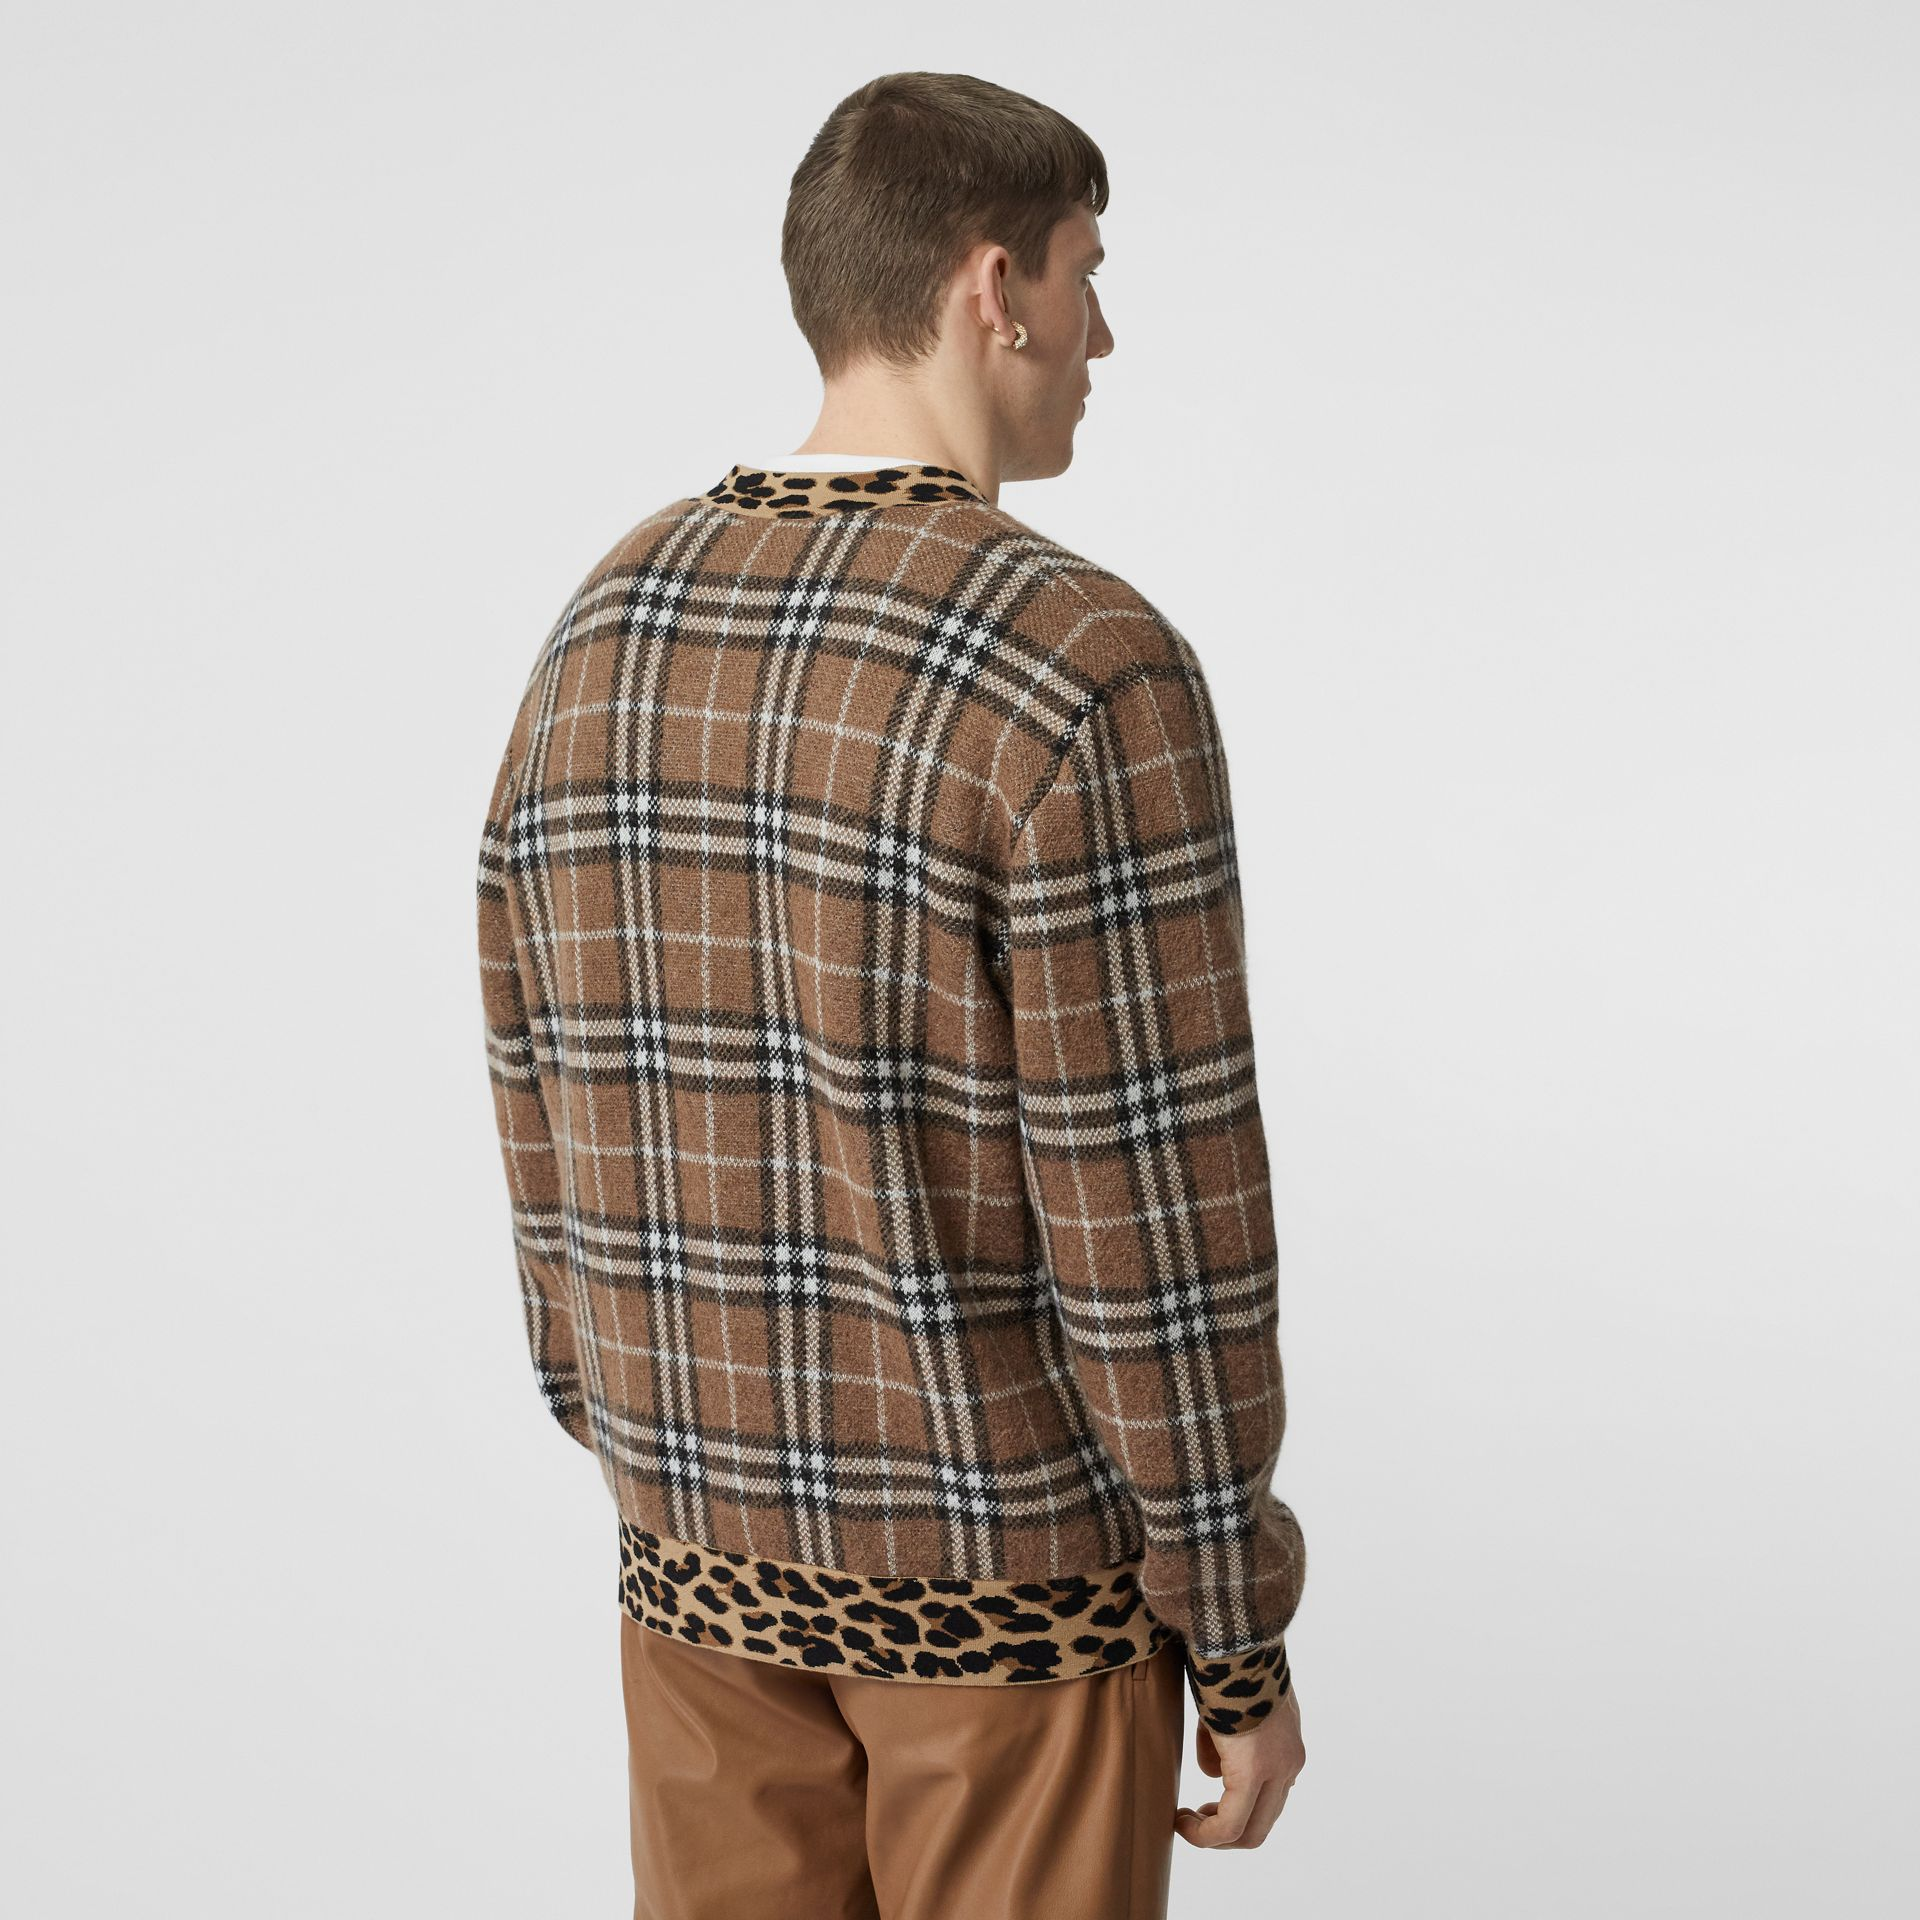 Leopard Detail Vintage Check Cashmere Blend Sweater in Warm Walnut - Men | Burberry - gallery image 2